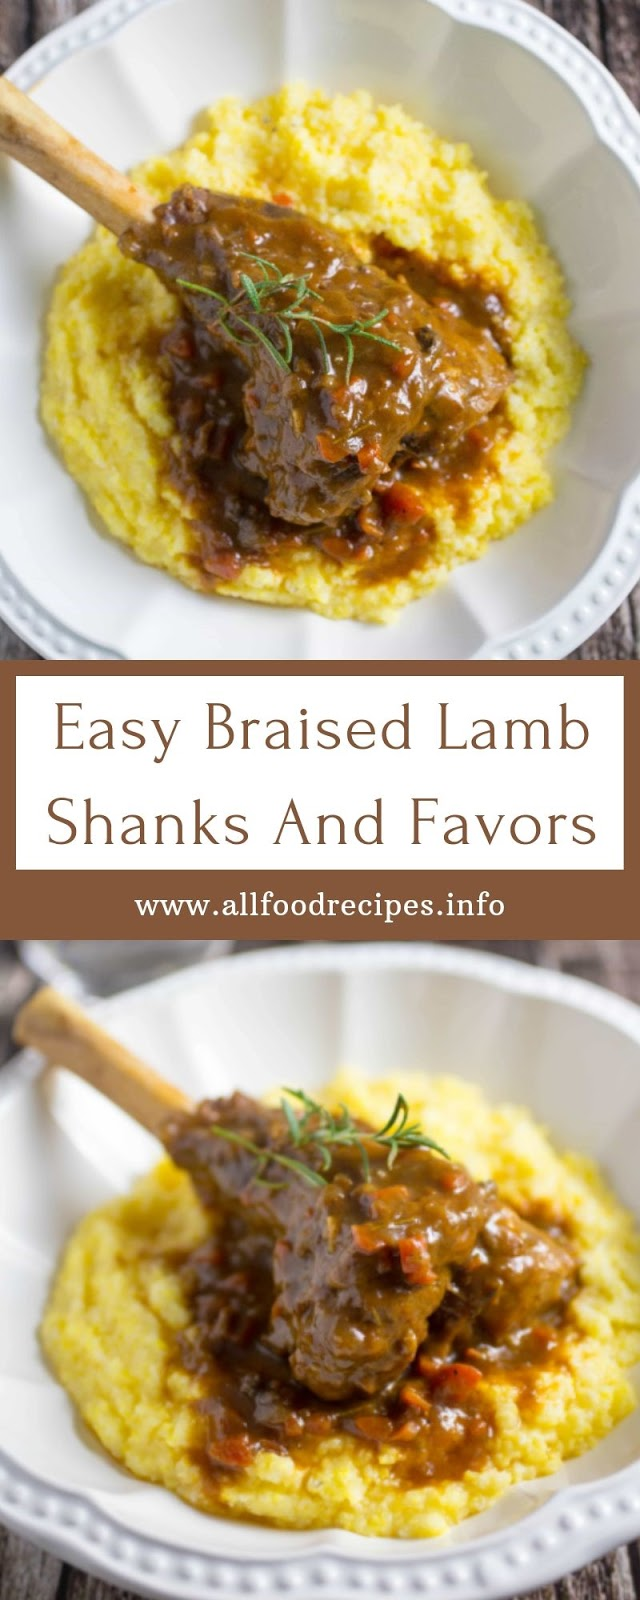 Easy Braised Lamb Shanks And Favors